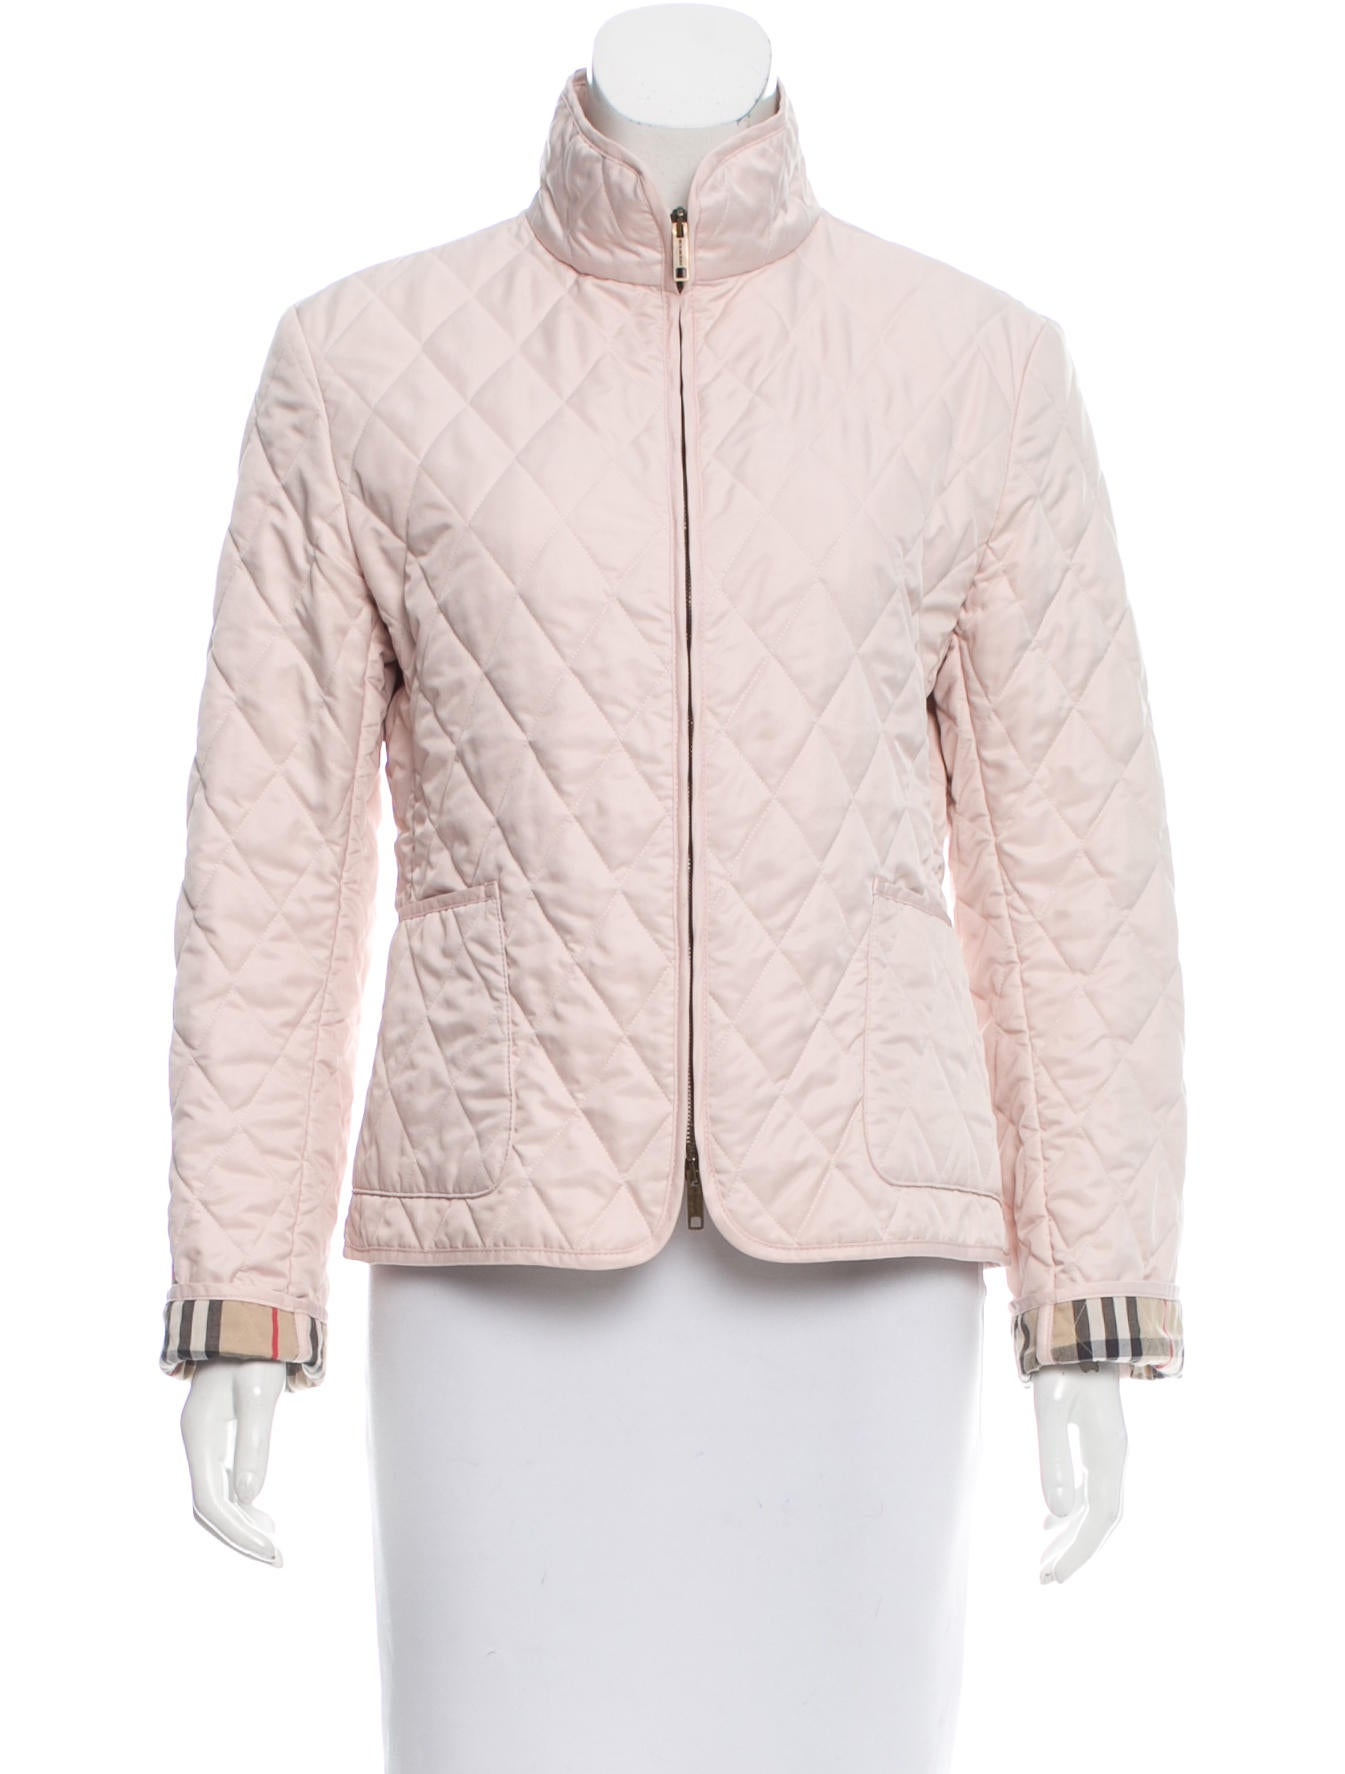 Burberry Lightweight Quilted Jacket Clothing Bur70461